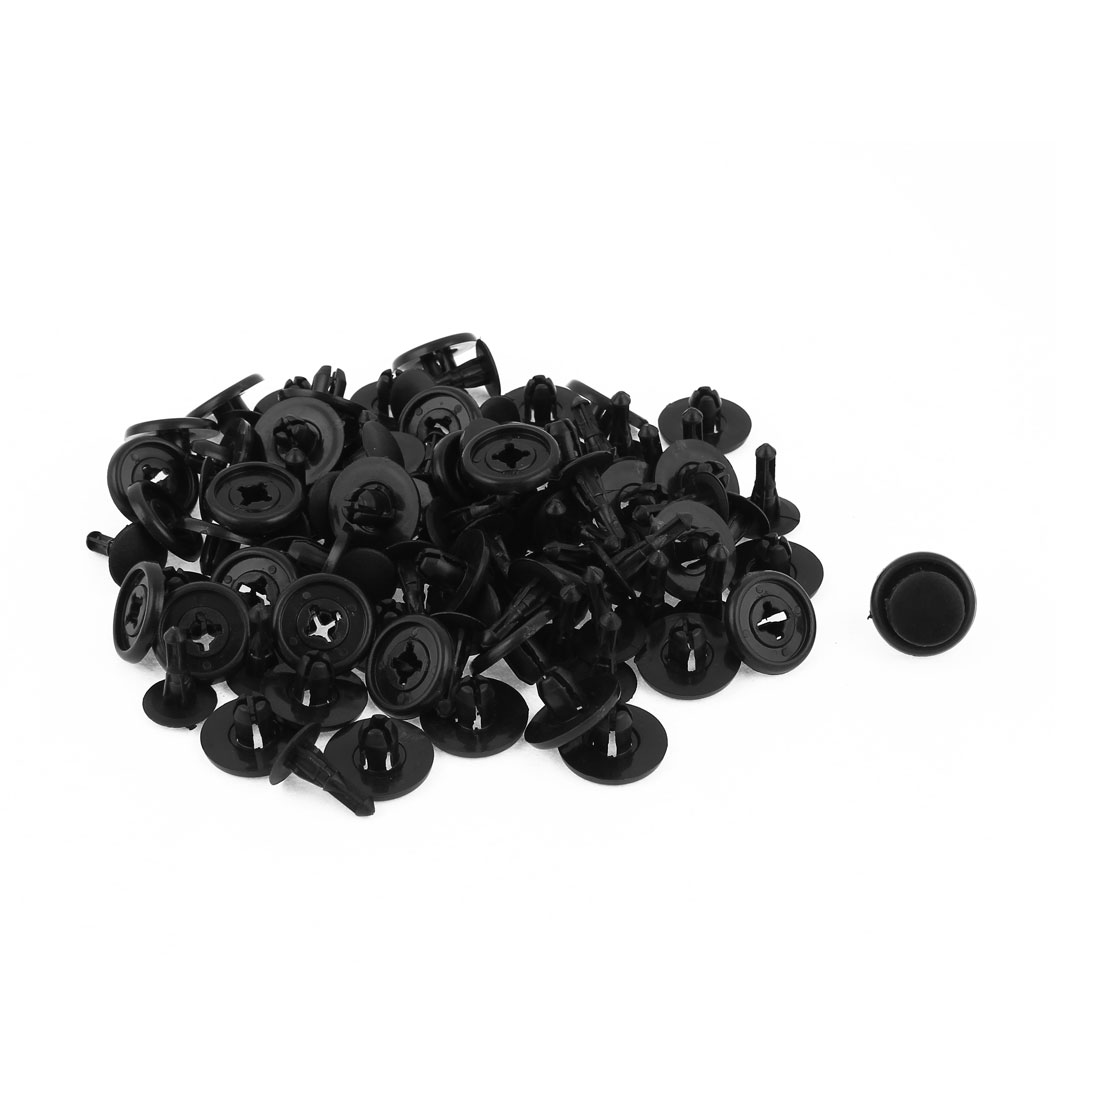 50 Pcs 14 x 7mm Hole Plastic Rivet Car Door Trim Panel Retainer Fastener Black